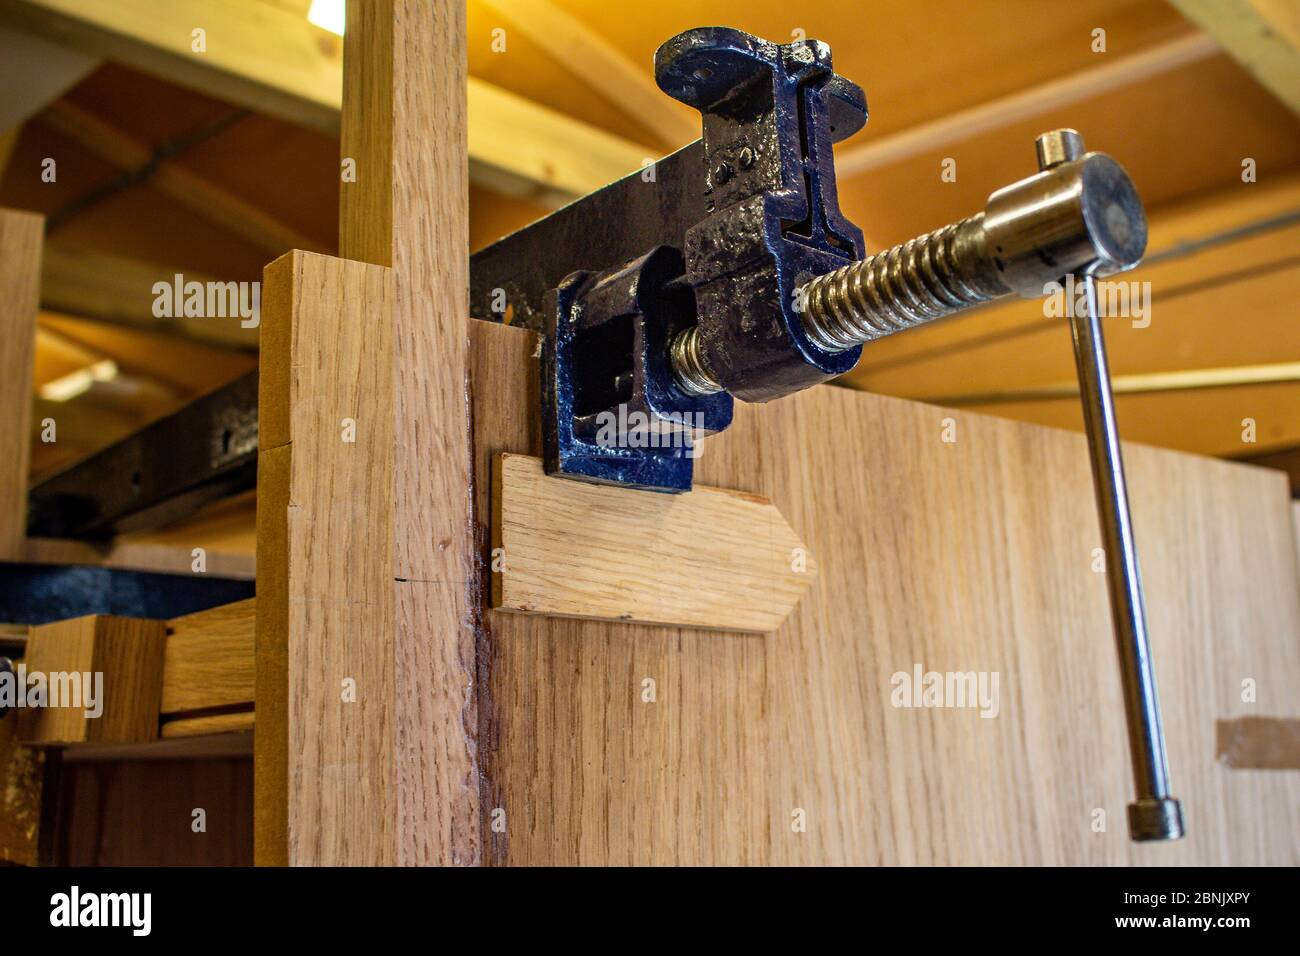 Woodworking Clamps Being Used To Clamp Wood While Glue Dries Stock Photo Alamy